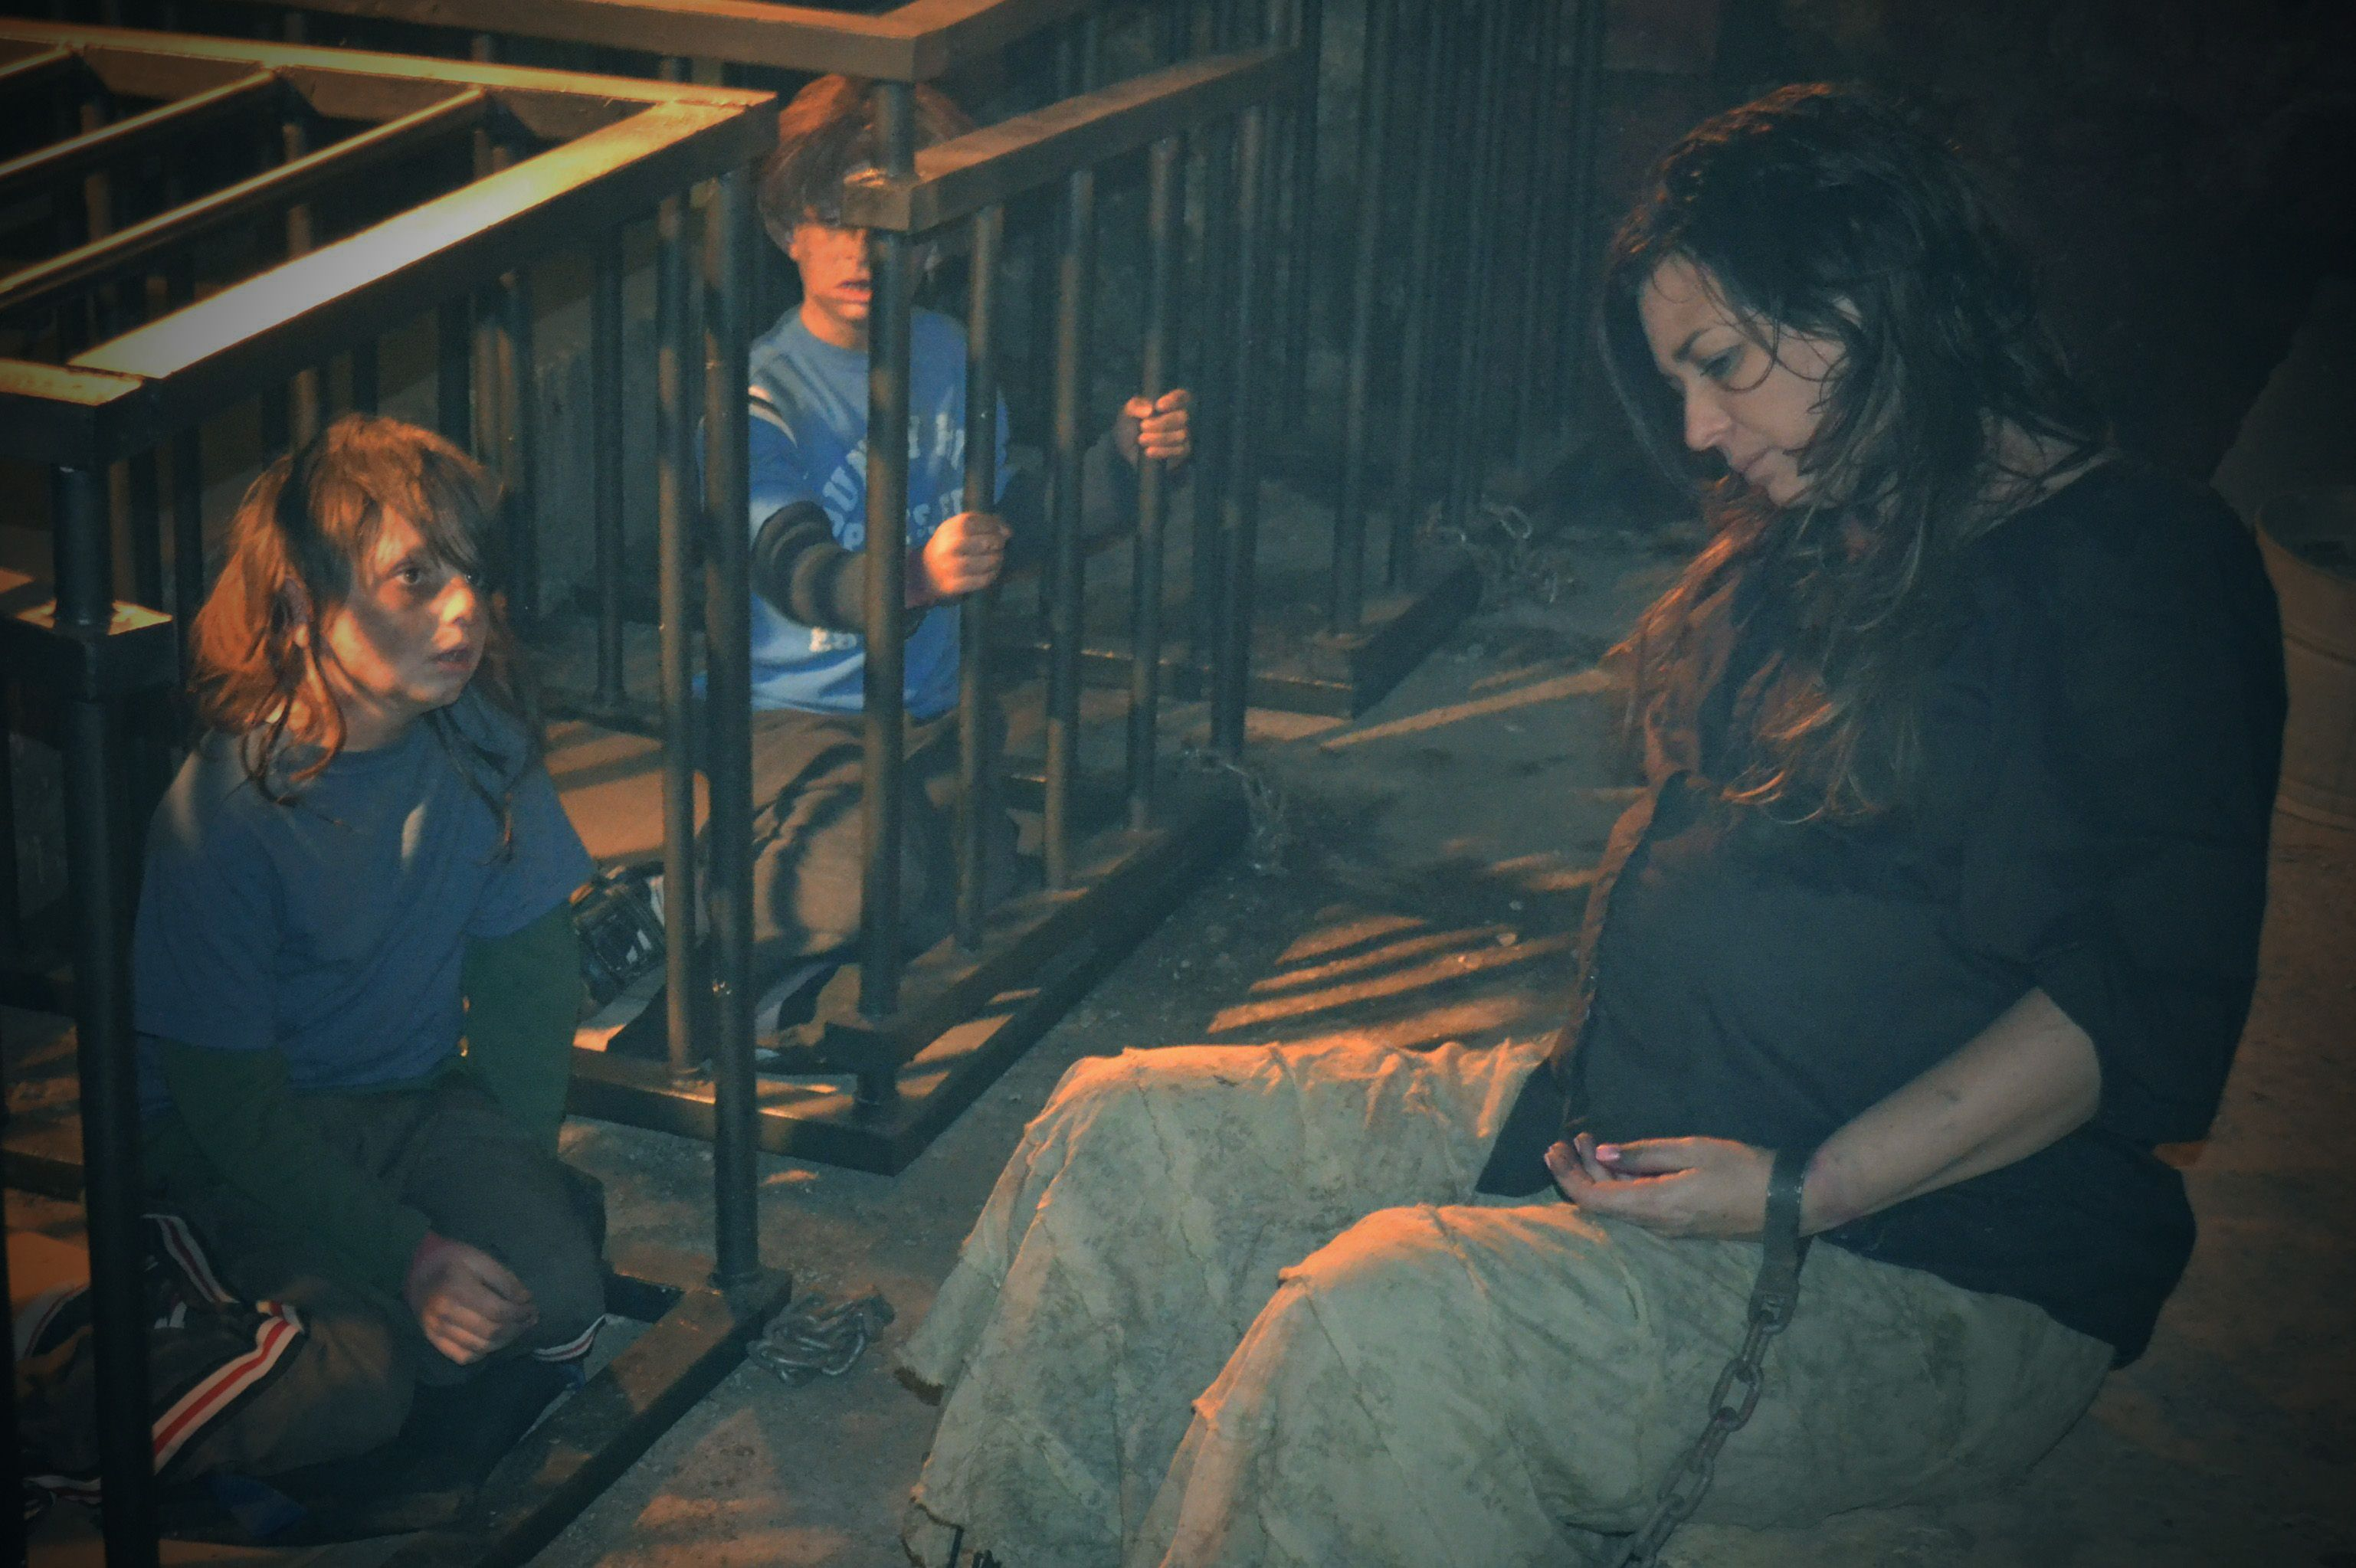 The boys in cages, basement scene HOLLOW CREEK MOVIE